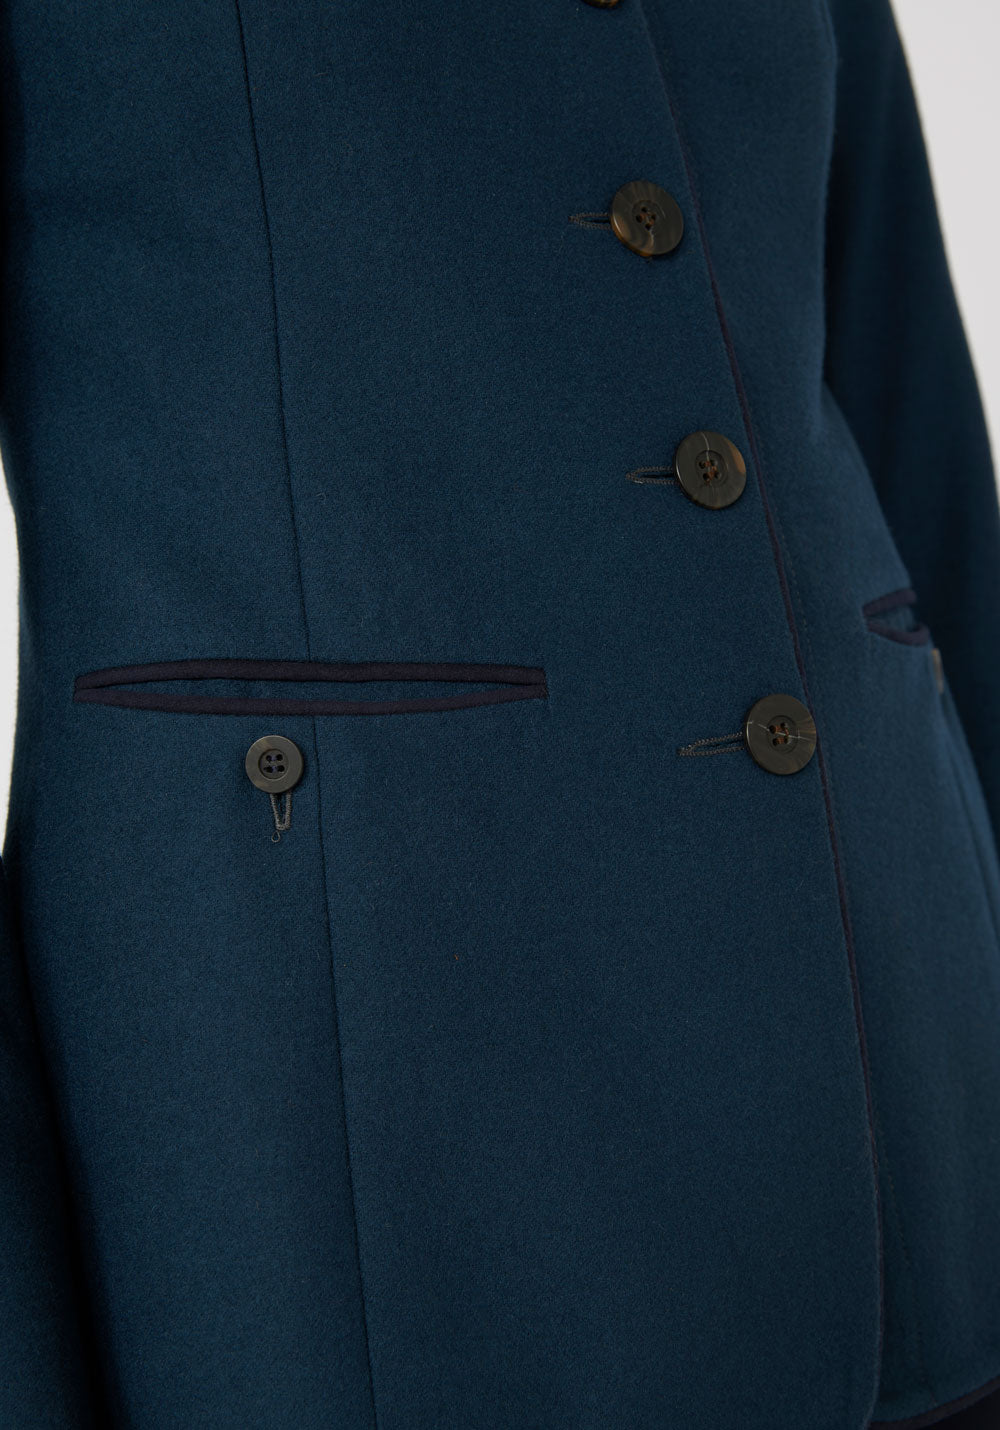 Patmos Jacket Antique Blue (Close up)